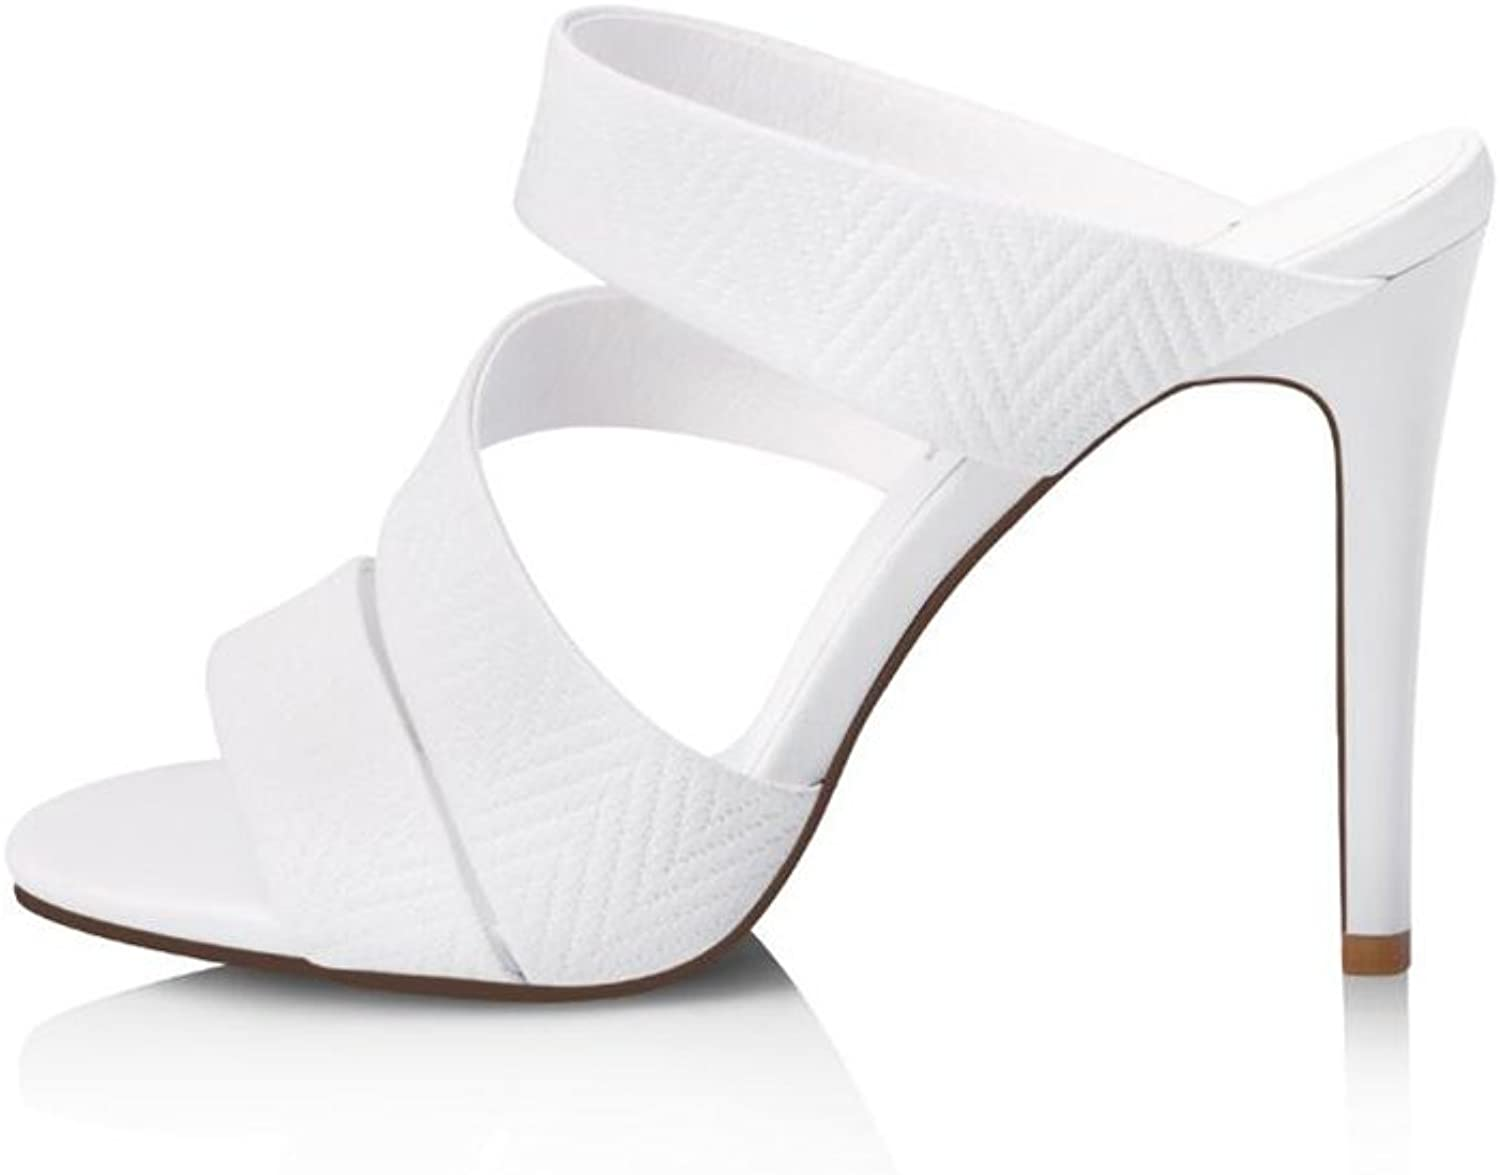 CJC High-Heeled Sandals Baotou High Heels Thin High Heels Stiletto Heels Sandals Sexy Fashion Elegant (color   White, Size   EU35 UK3)